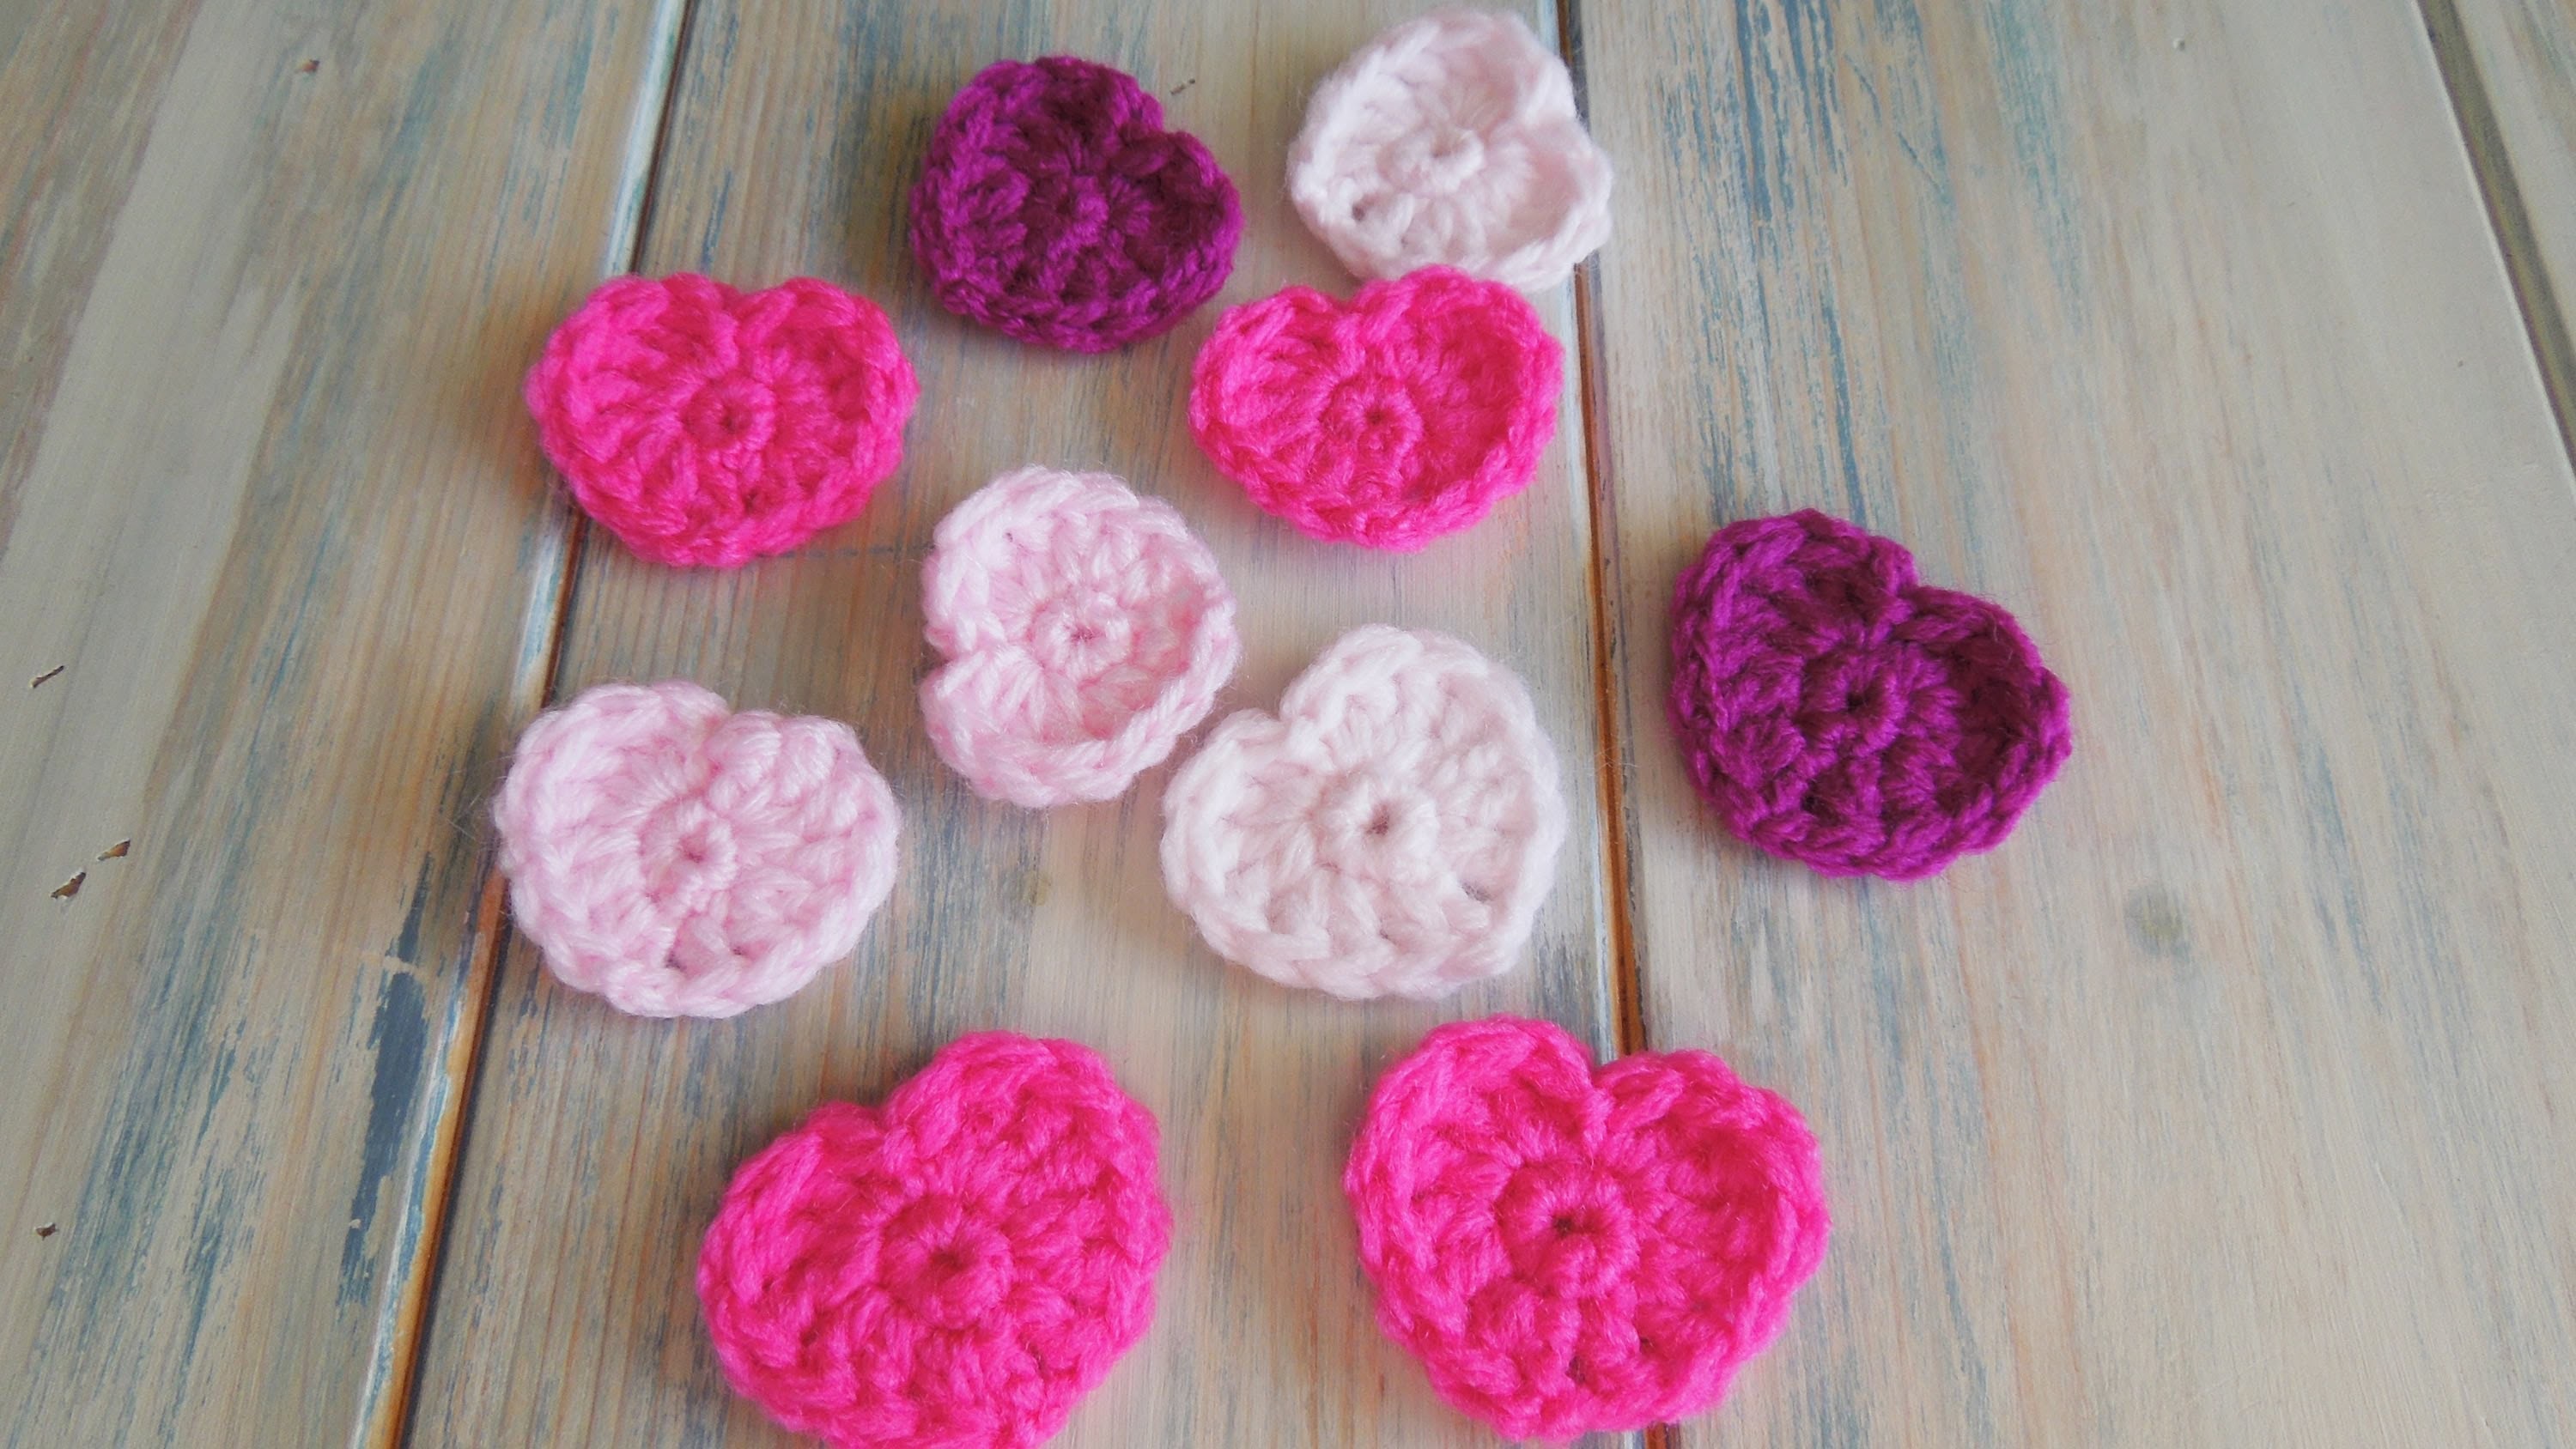 (crochet) How To - Crochet a Simple Heart v2 - no magic circle!